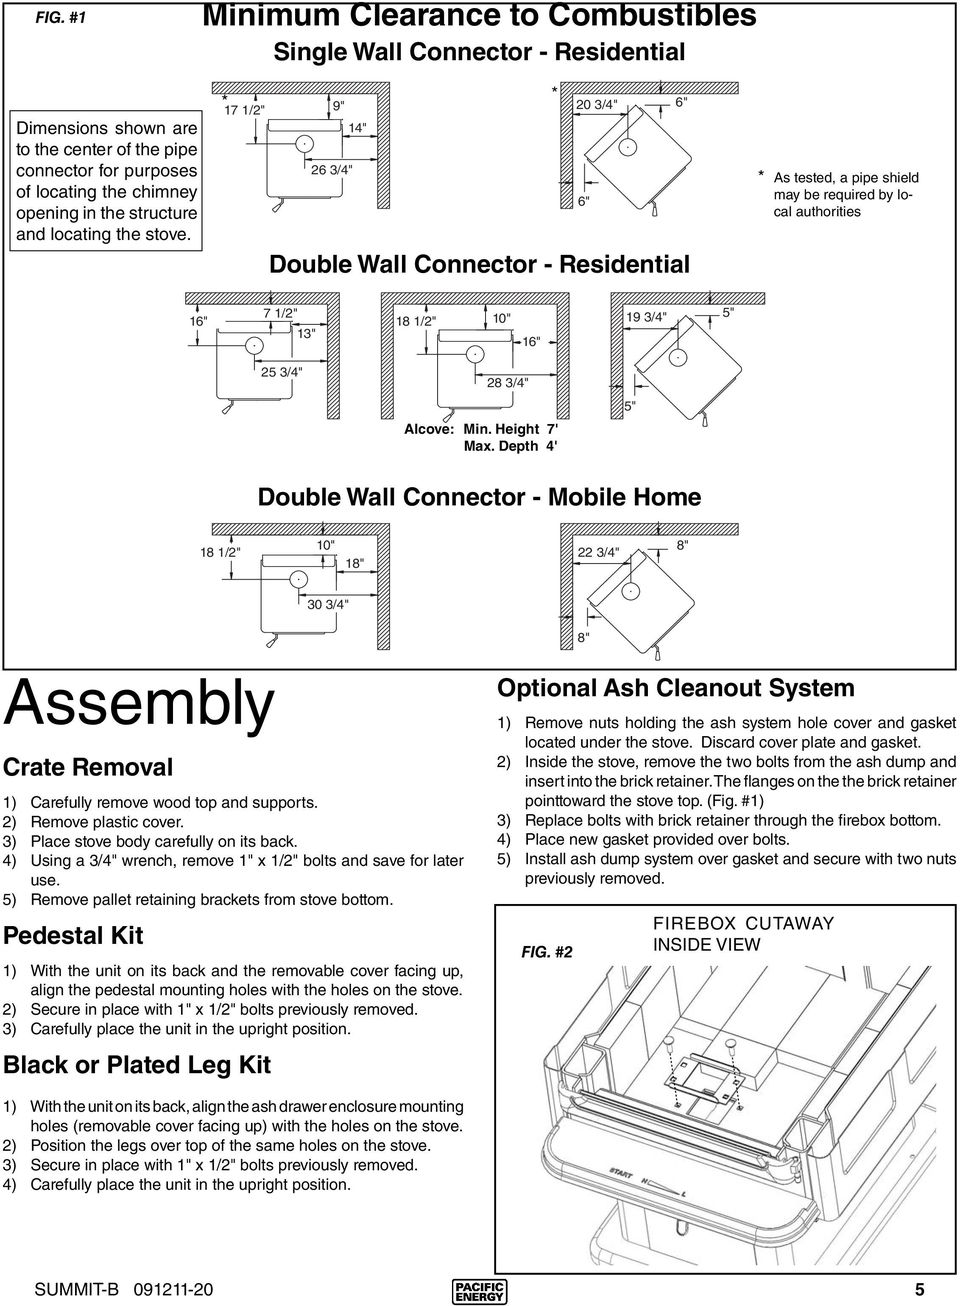 INSTALLATION AND OPERATING INSTRUCTIONS - PDF